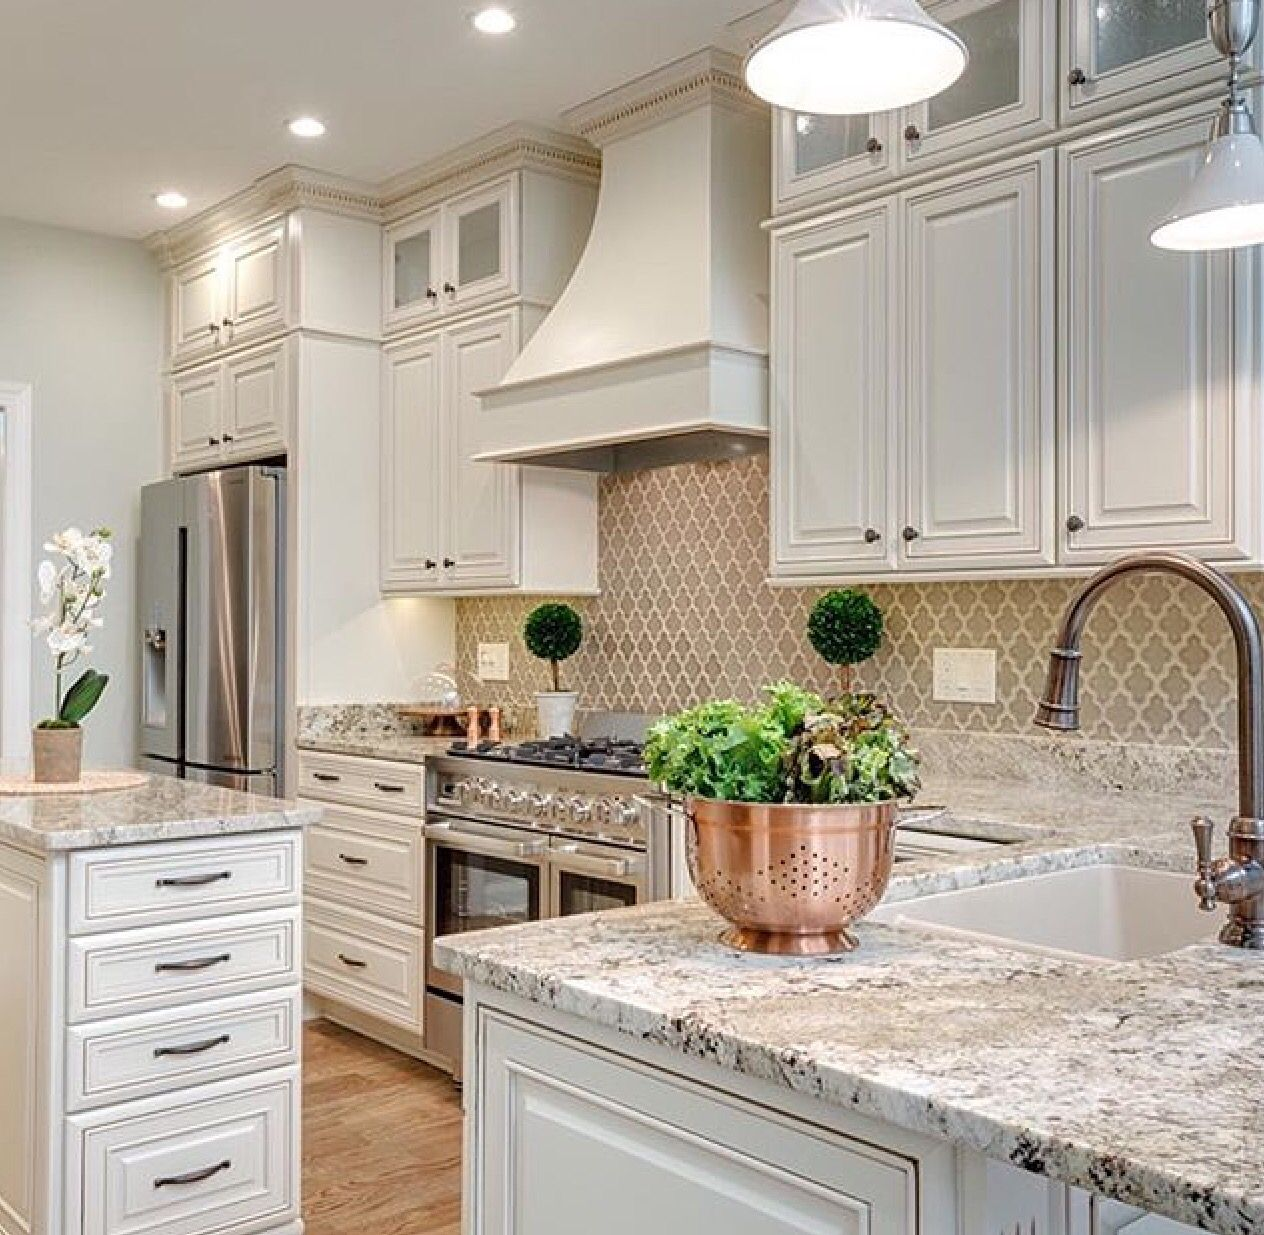 A Neutral Colored Kitchen Looks Clean And Fresh The Patterned Backsplash Doesnt Over Room